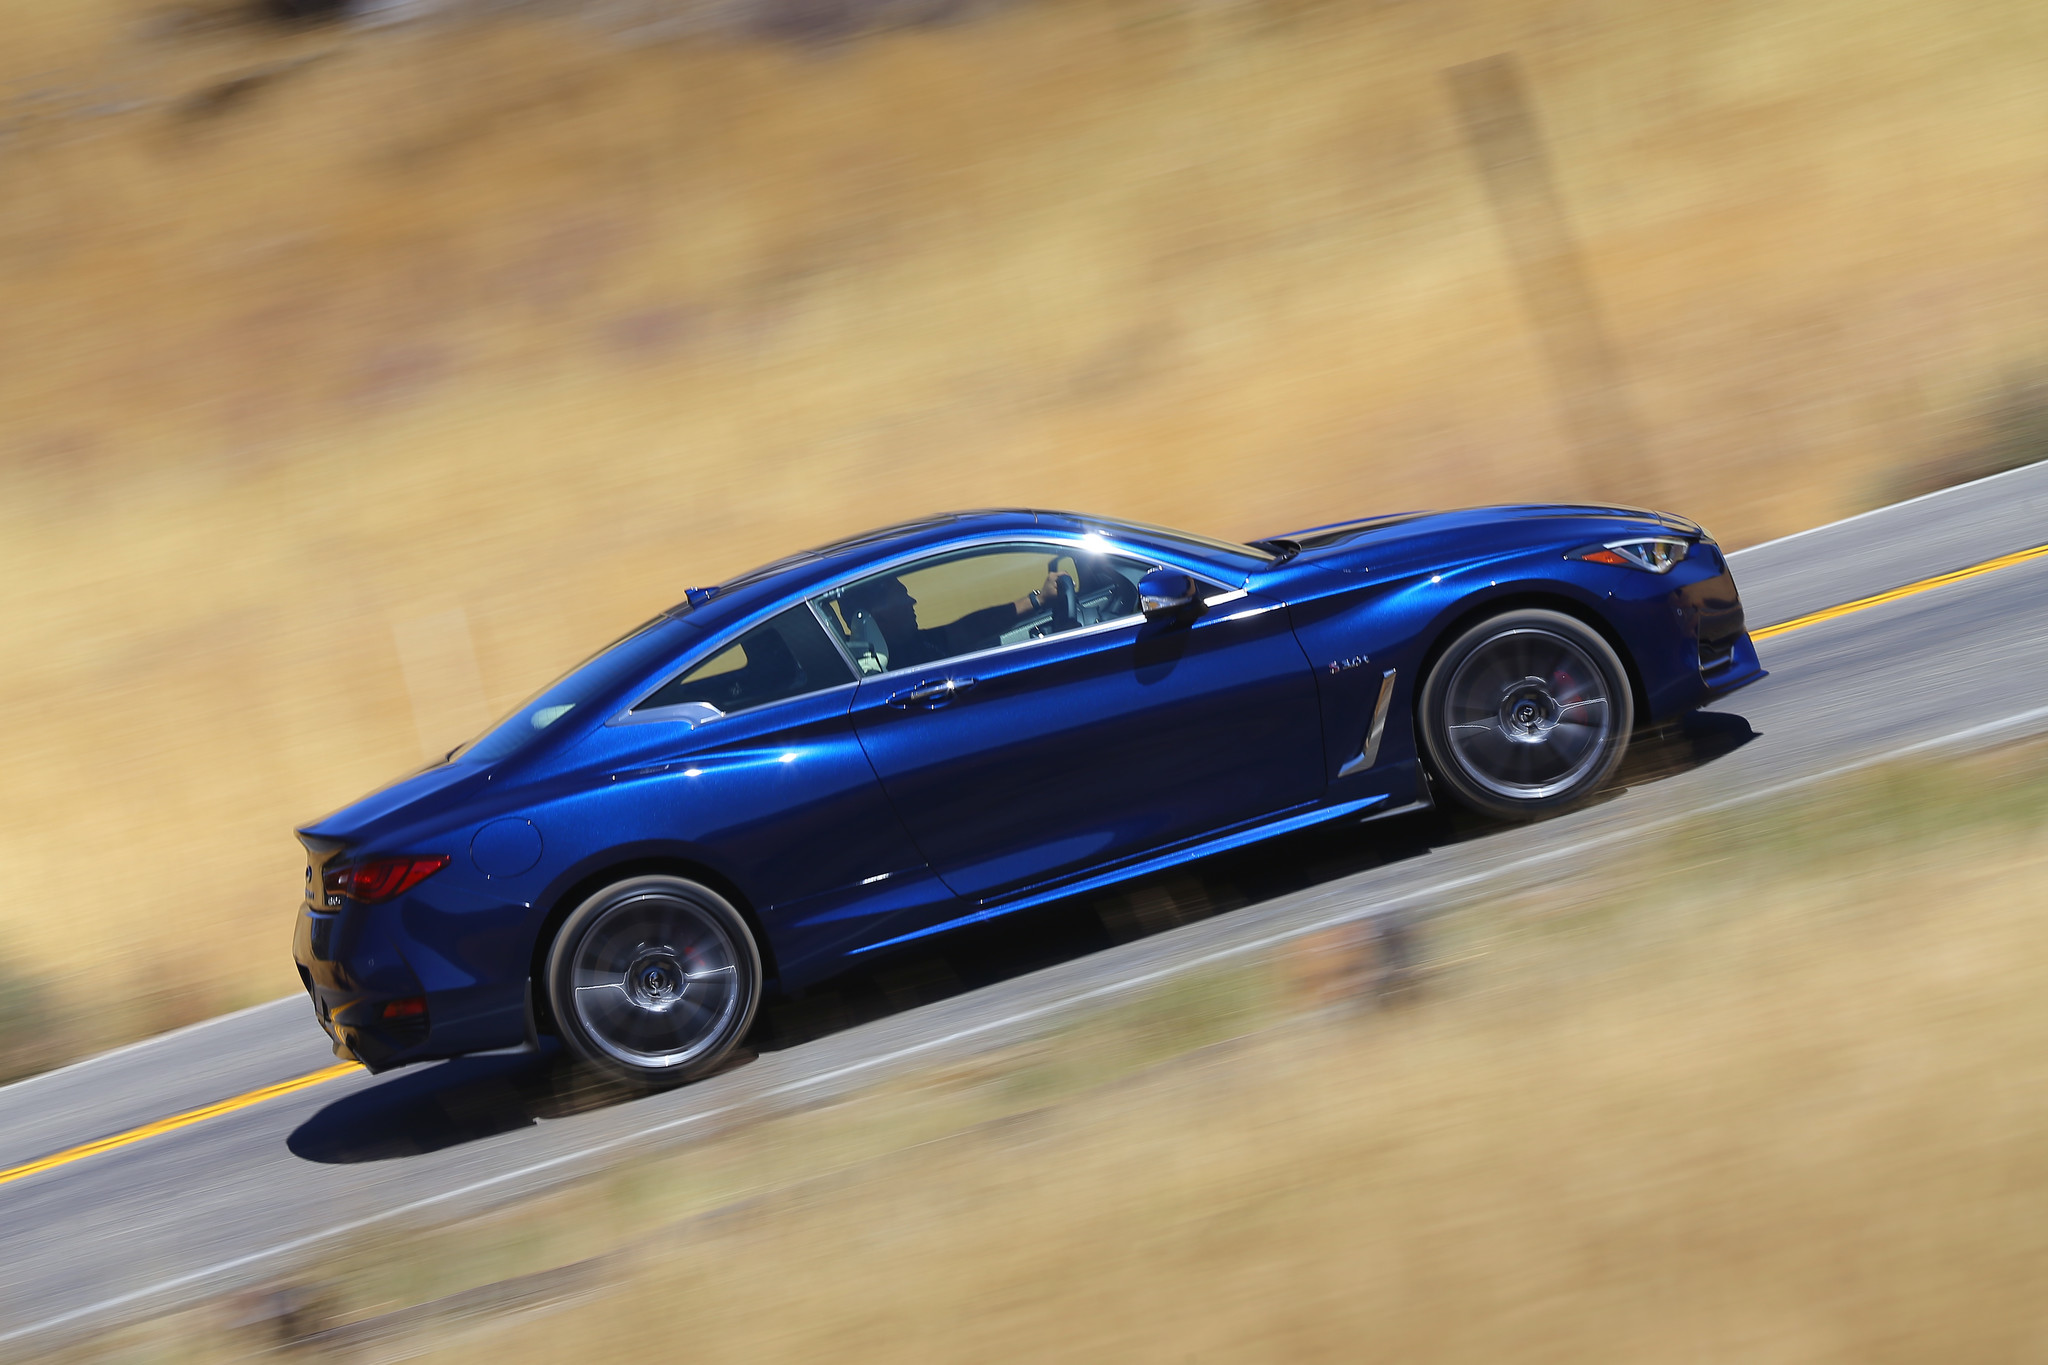 2017 Infiniti Q60 Coupe blends performance with fort Chicago